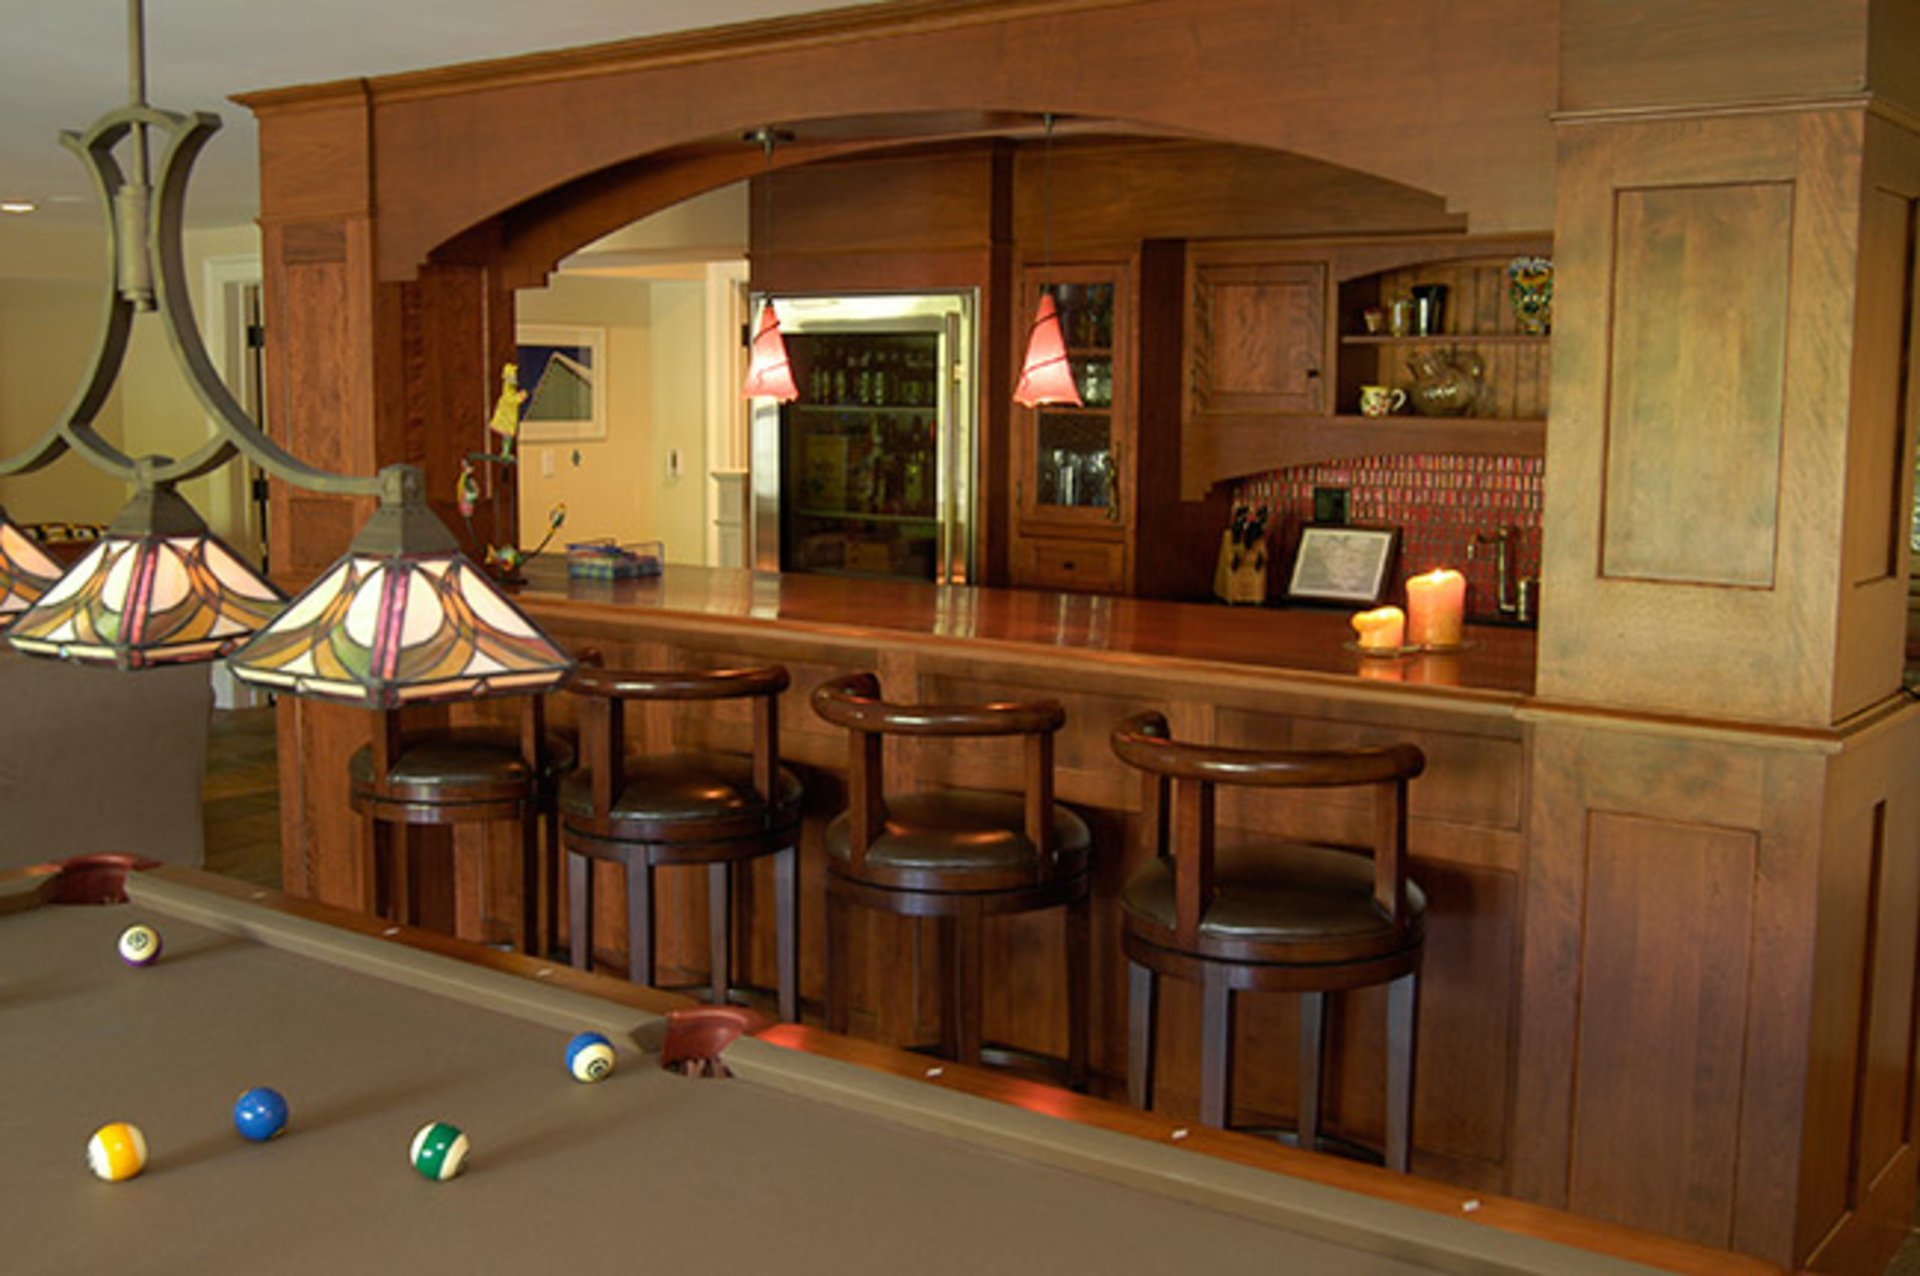 Custom Lighting Sets The Mood For The Custom Home Bar.